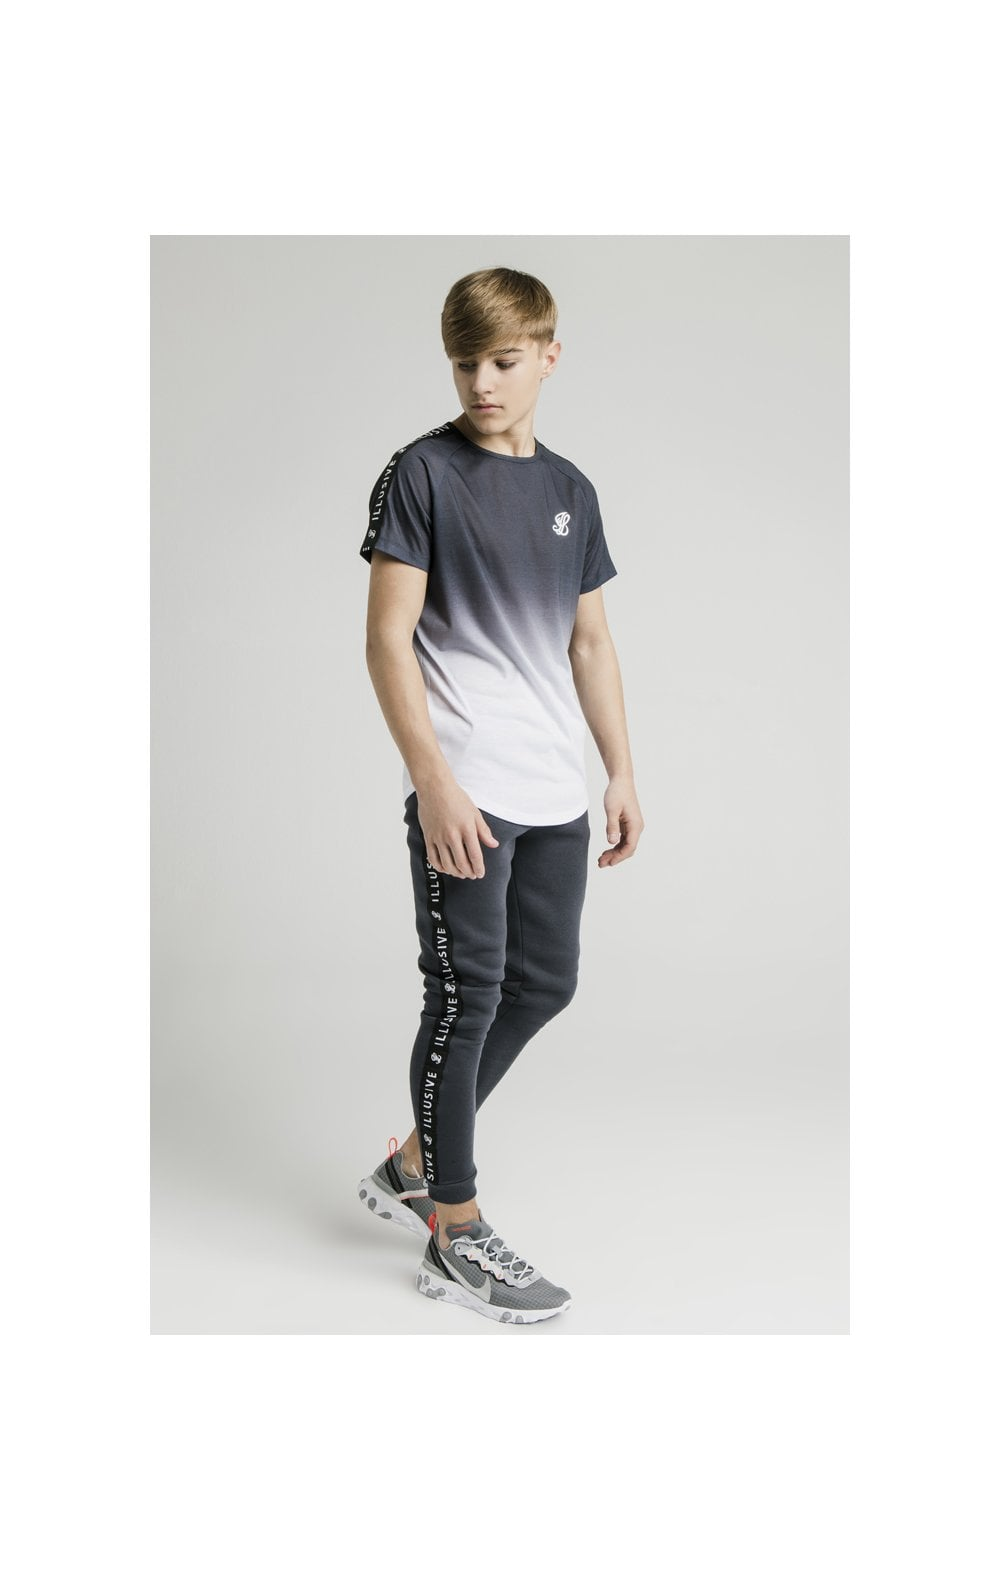 Load image into Gallery viewer, Illusive London S/S Fade Taped Tee - Grey & White (6)